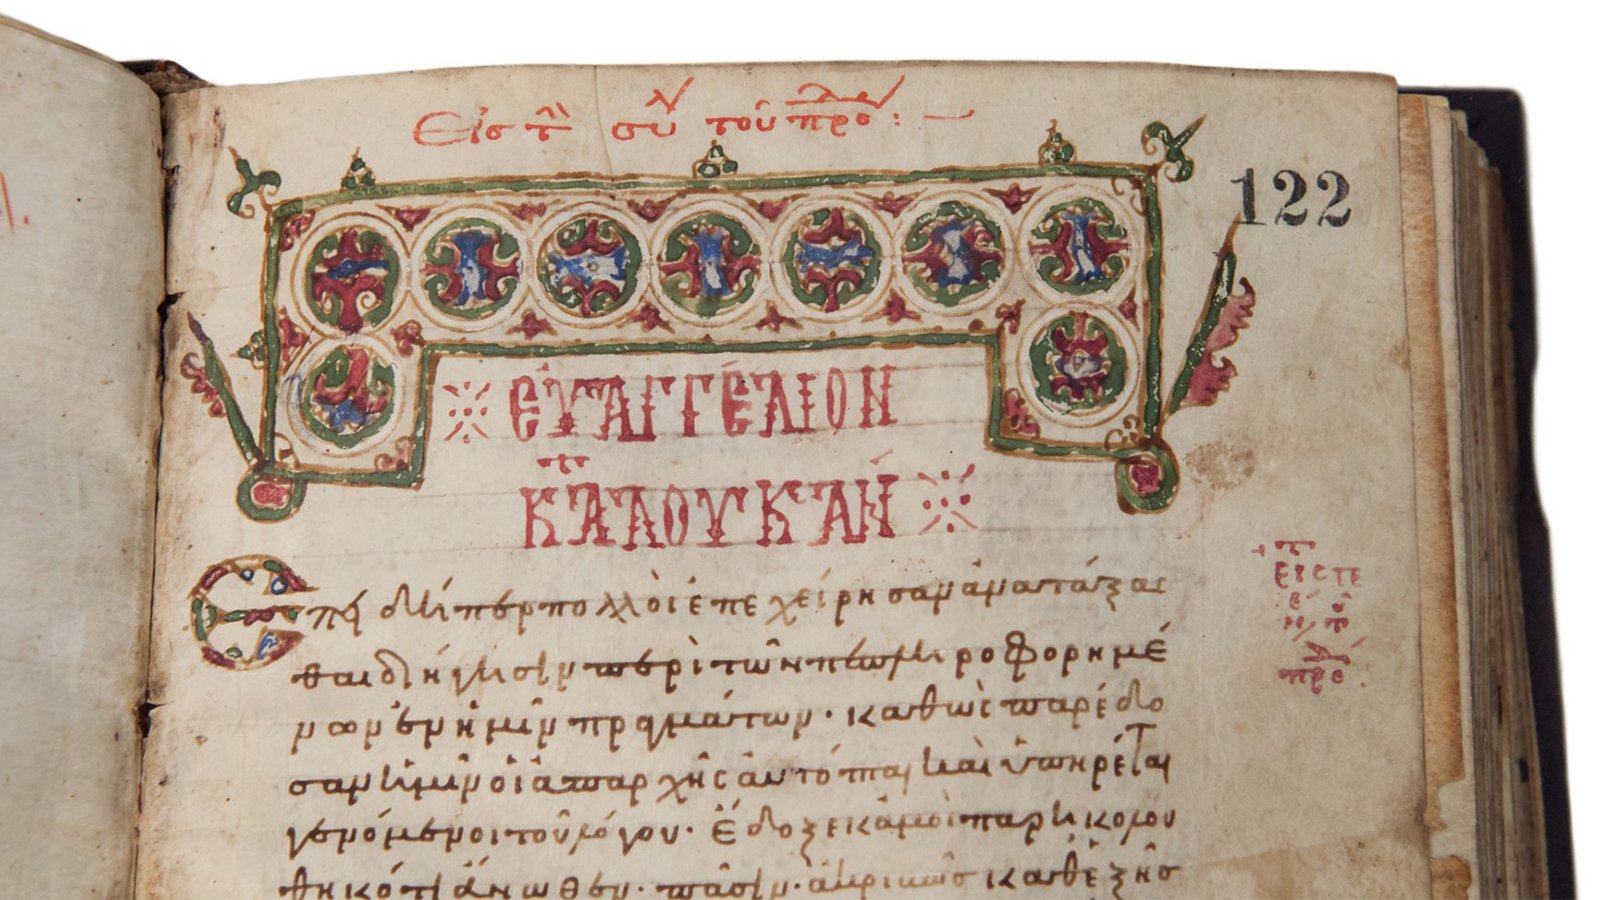 Museum of the Bible returns medieval manuscript after